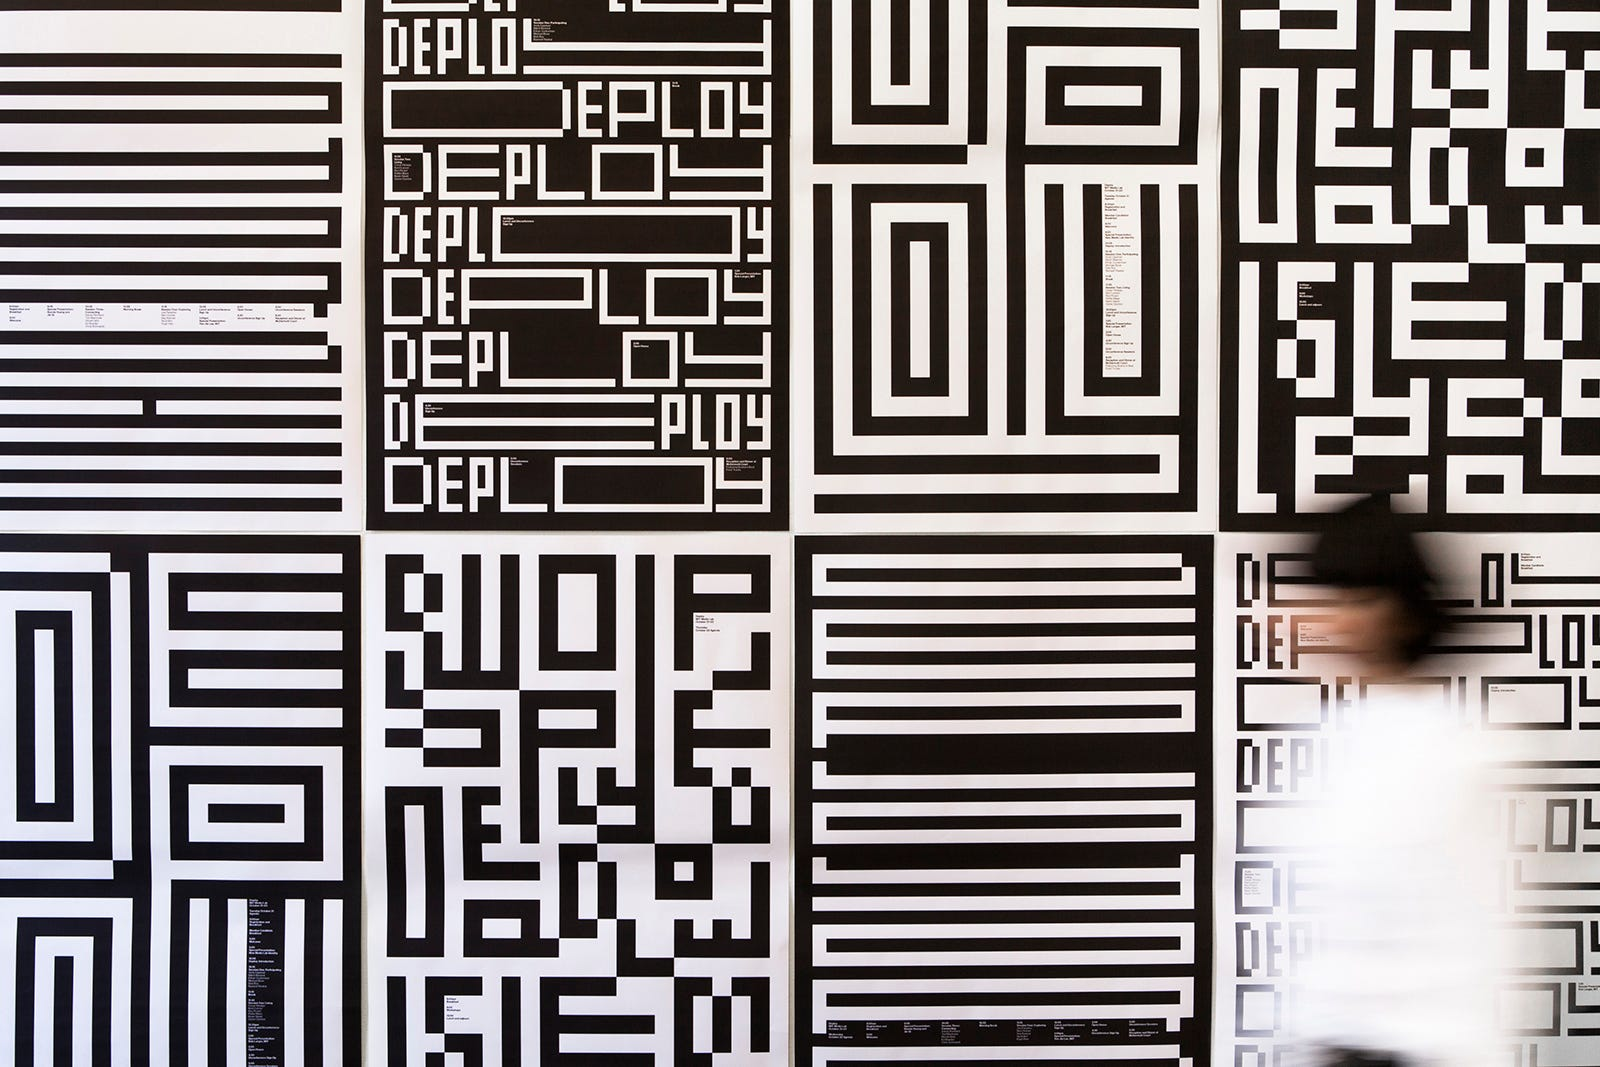 "Posters from the MIT Media Lab were designed by Michael Bierut and his team at Pentagram as part of a bigger branding project for the organization. The design includes the word ""deploy"" in it's iconic display. Parts of the design carry through to other things like corporate logos and business cards for the media lab."